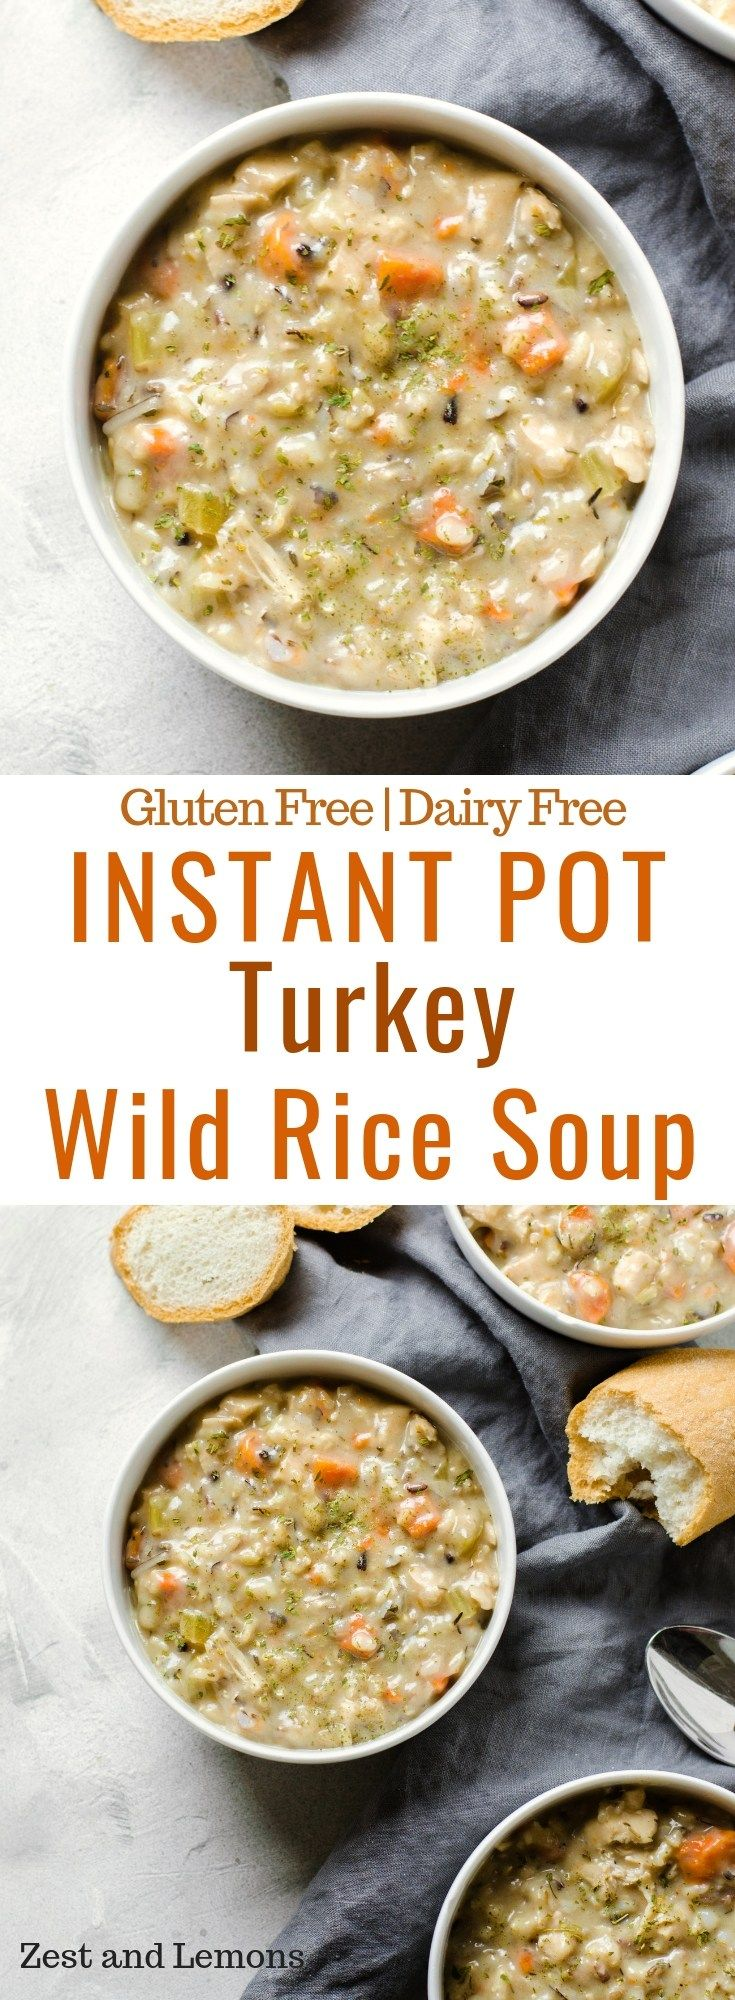 Instant Pot Turkey Wild Rice Soup. A thick and creamy soup for this winter season, and perfect for using leftover Thanksgiving turkey! - Zest and Lemons #instantpotrecipes